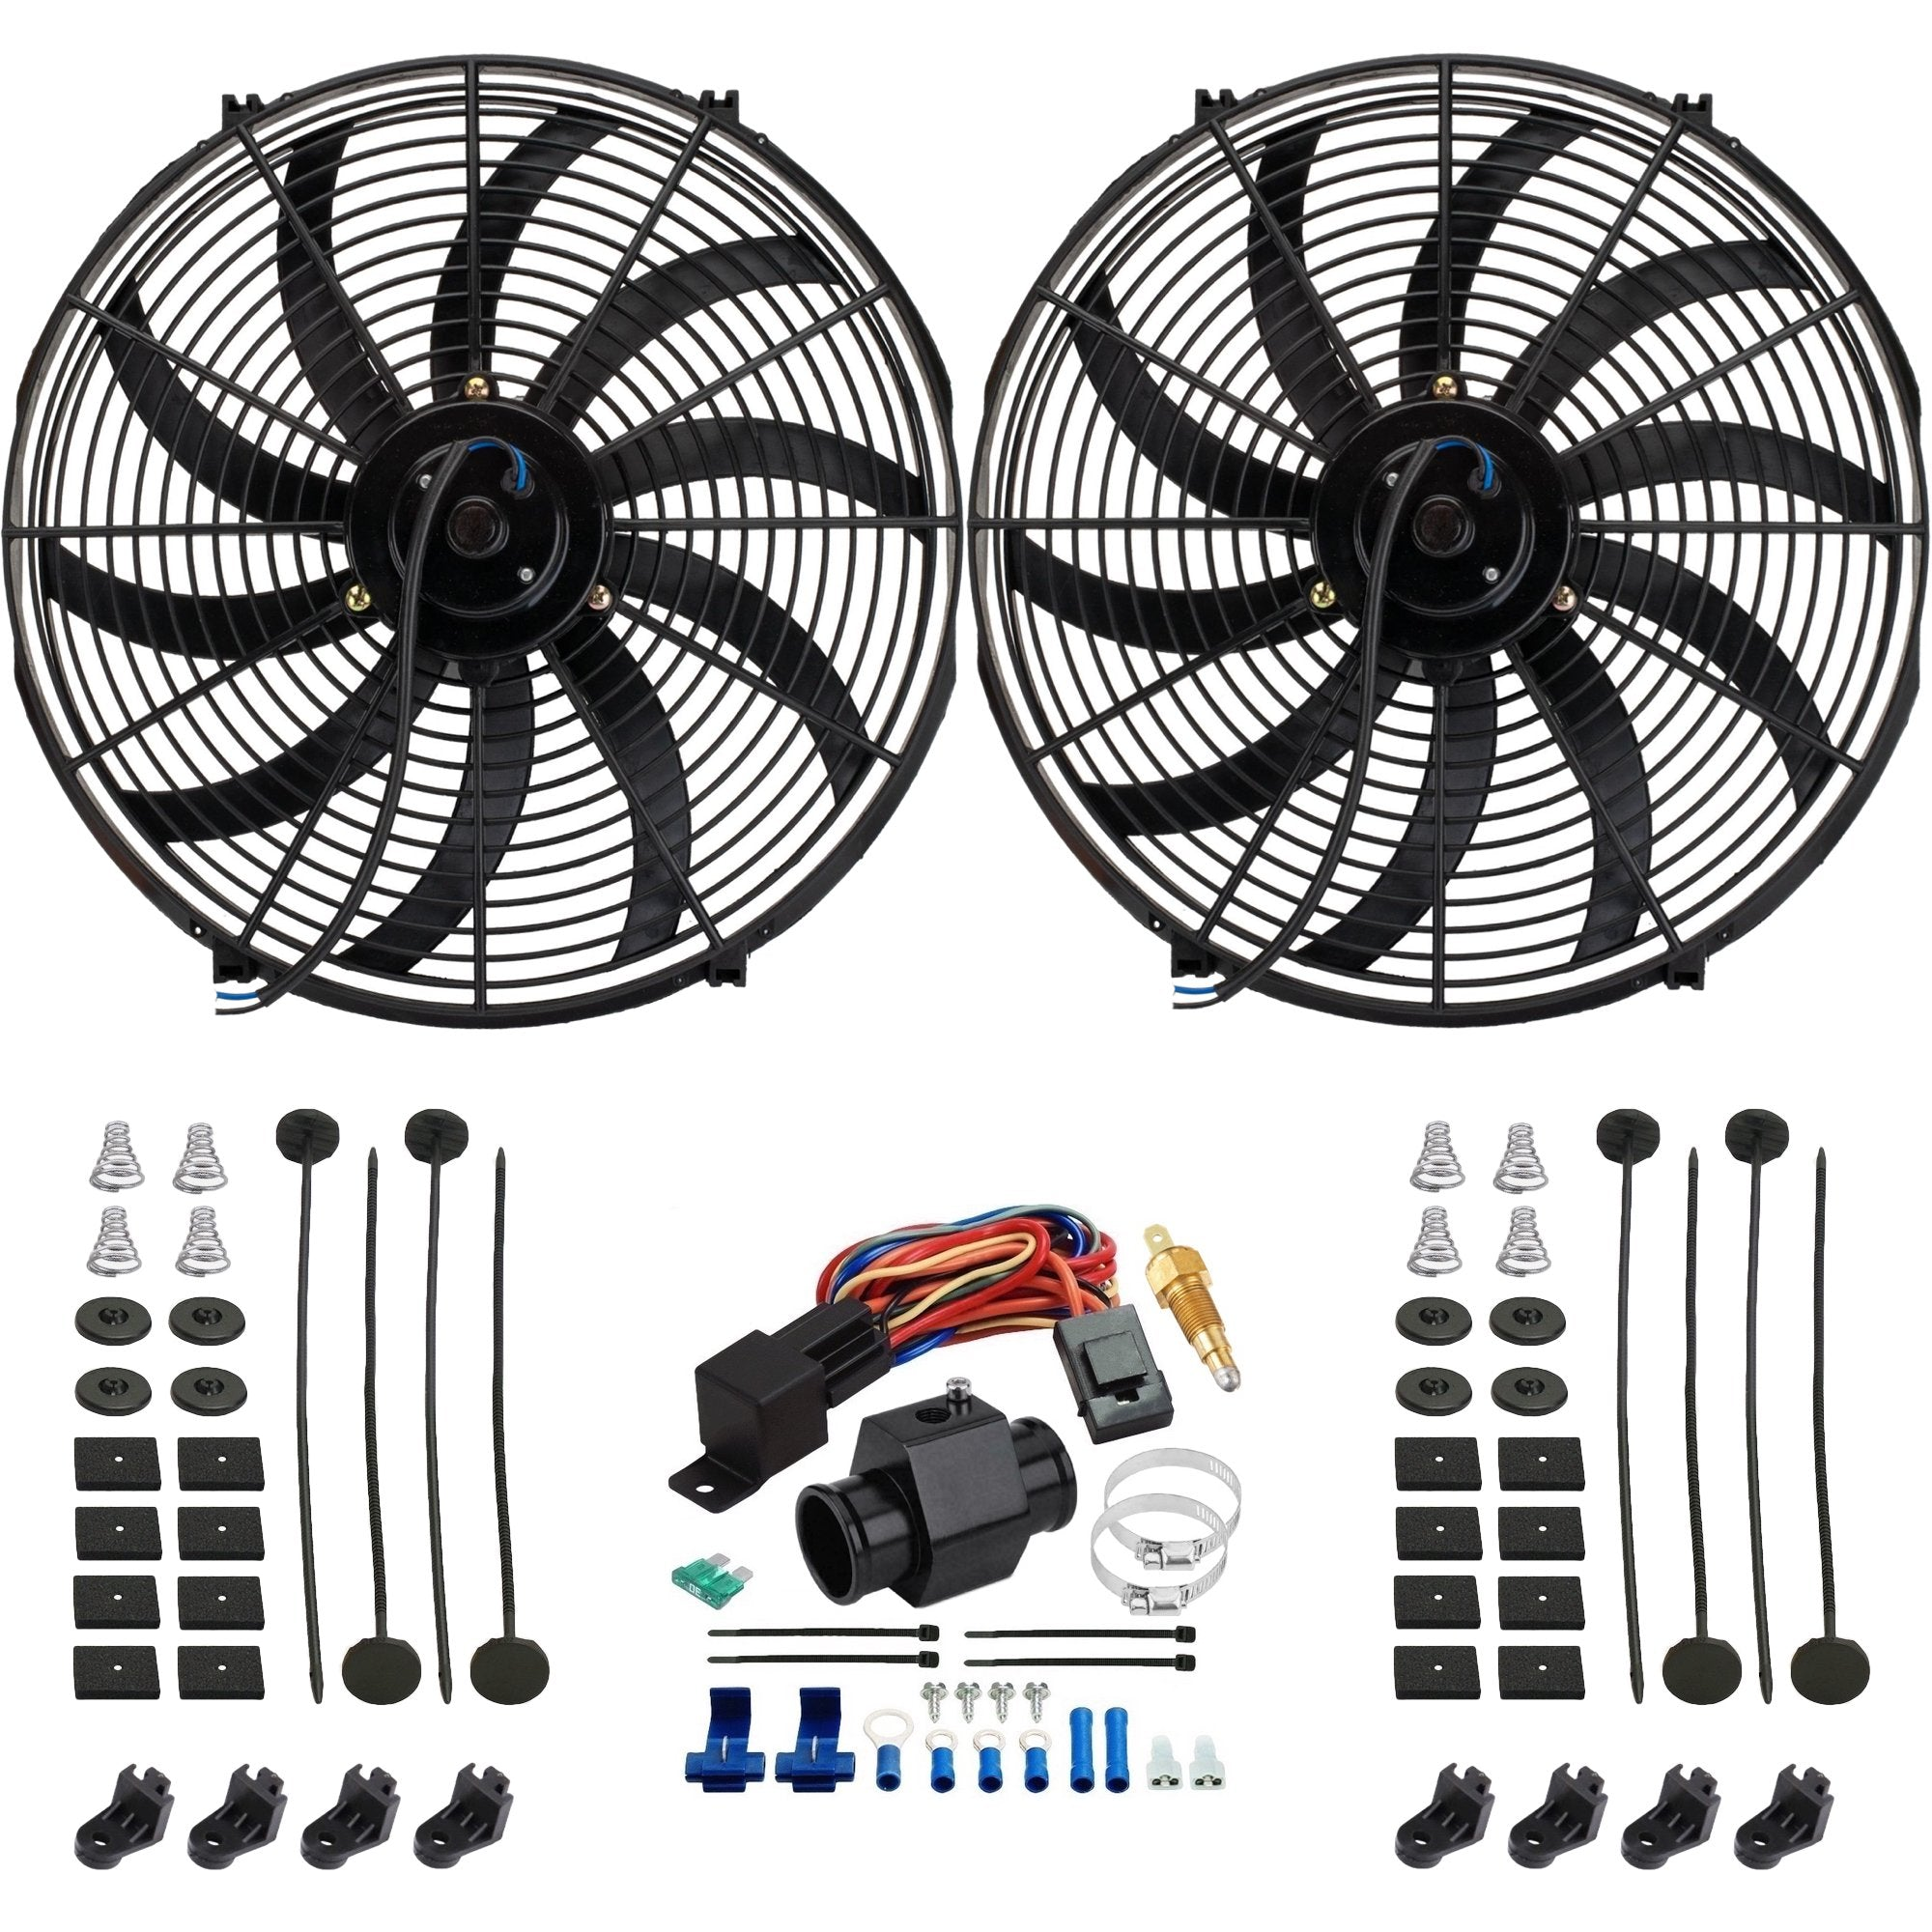 "Dual 16"" Inch Electric Cooling Fans Radiator Hose In-Line Ground Thermostat Temp Switch Wiring Kit-Dual Electric Fans-American Volt-26mm-140'F On - 125'F Off-American Volt"